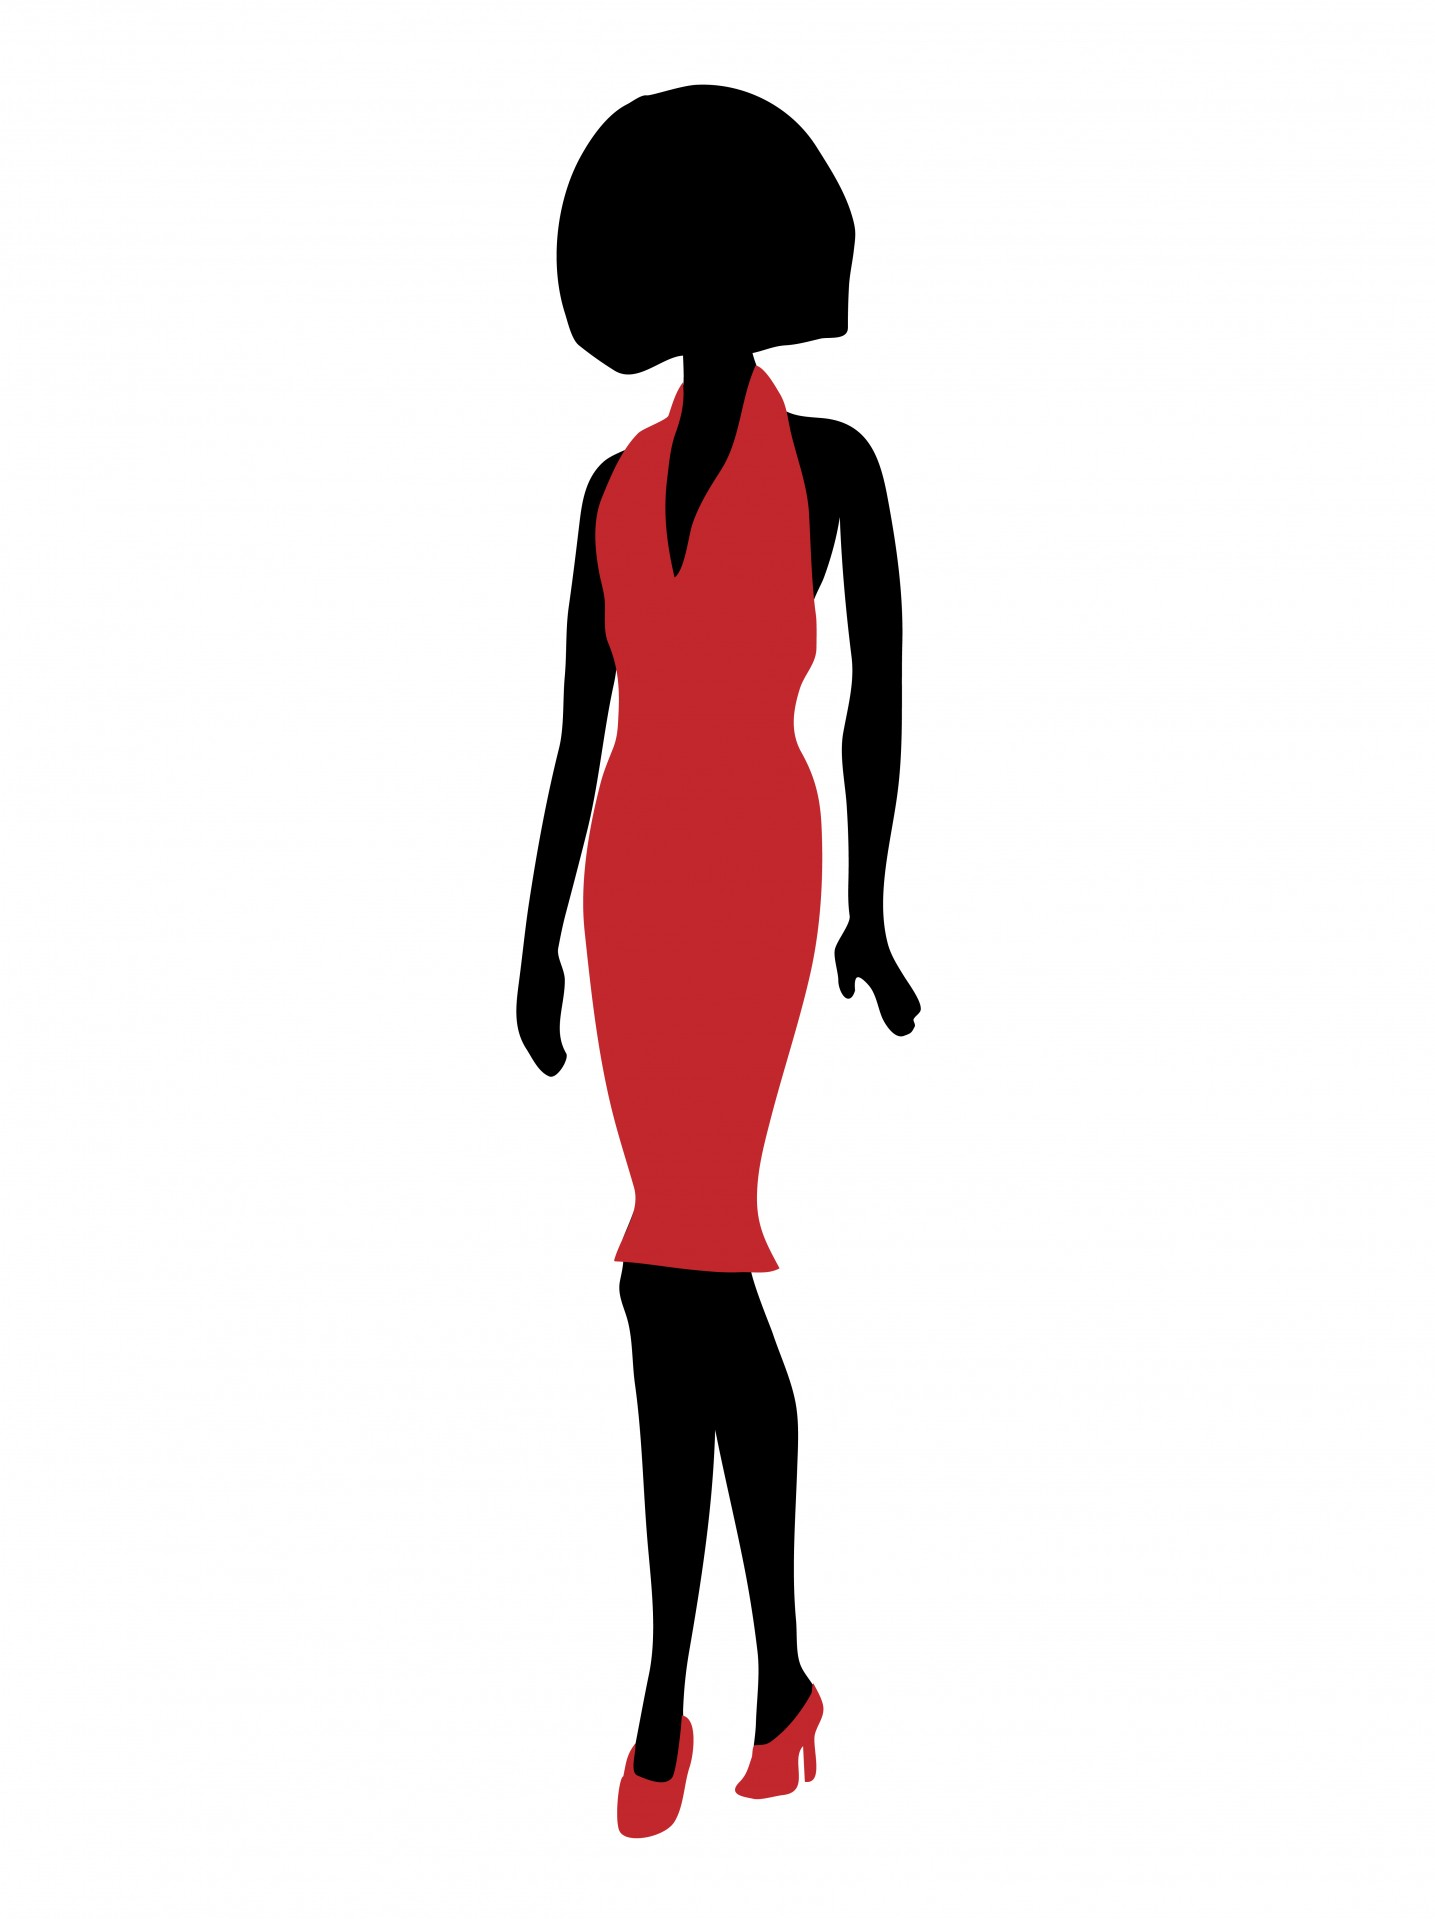 Red Dress clipart pretty lady In Public Photo Red Domain